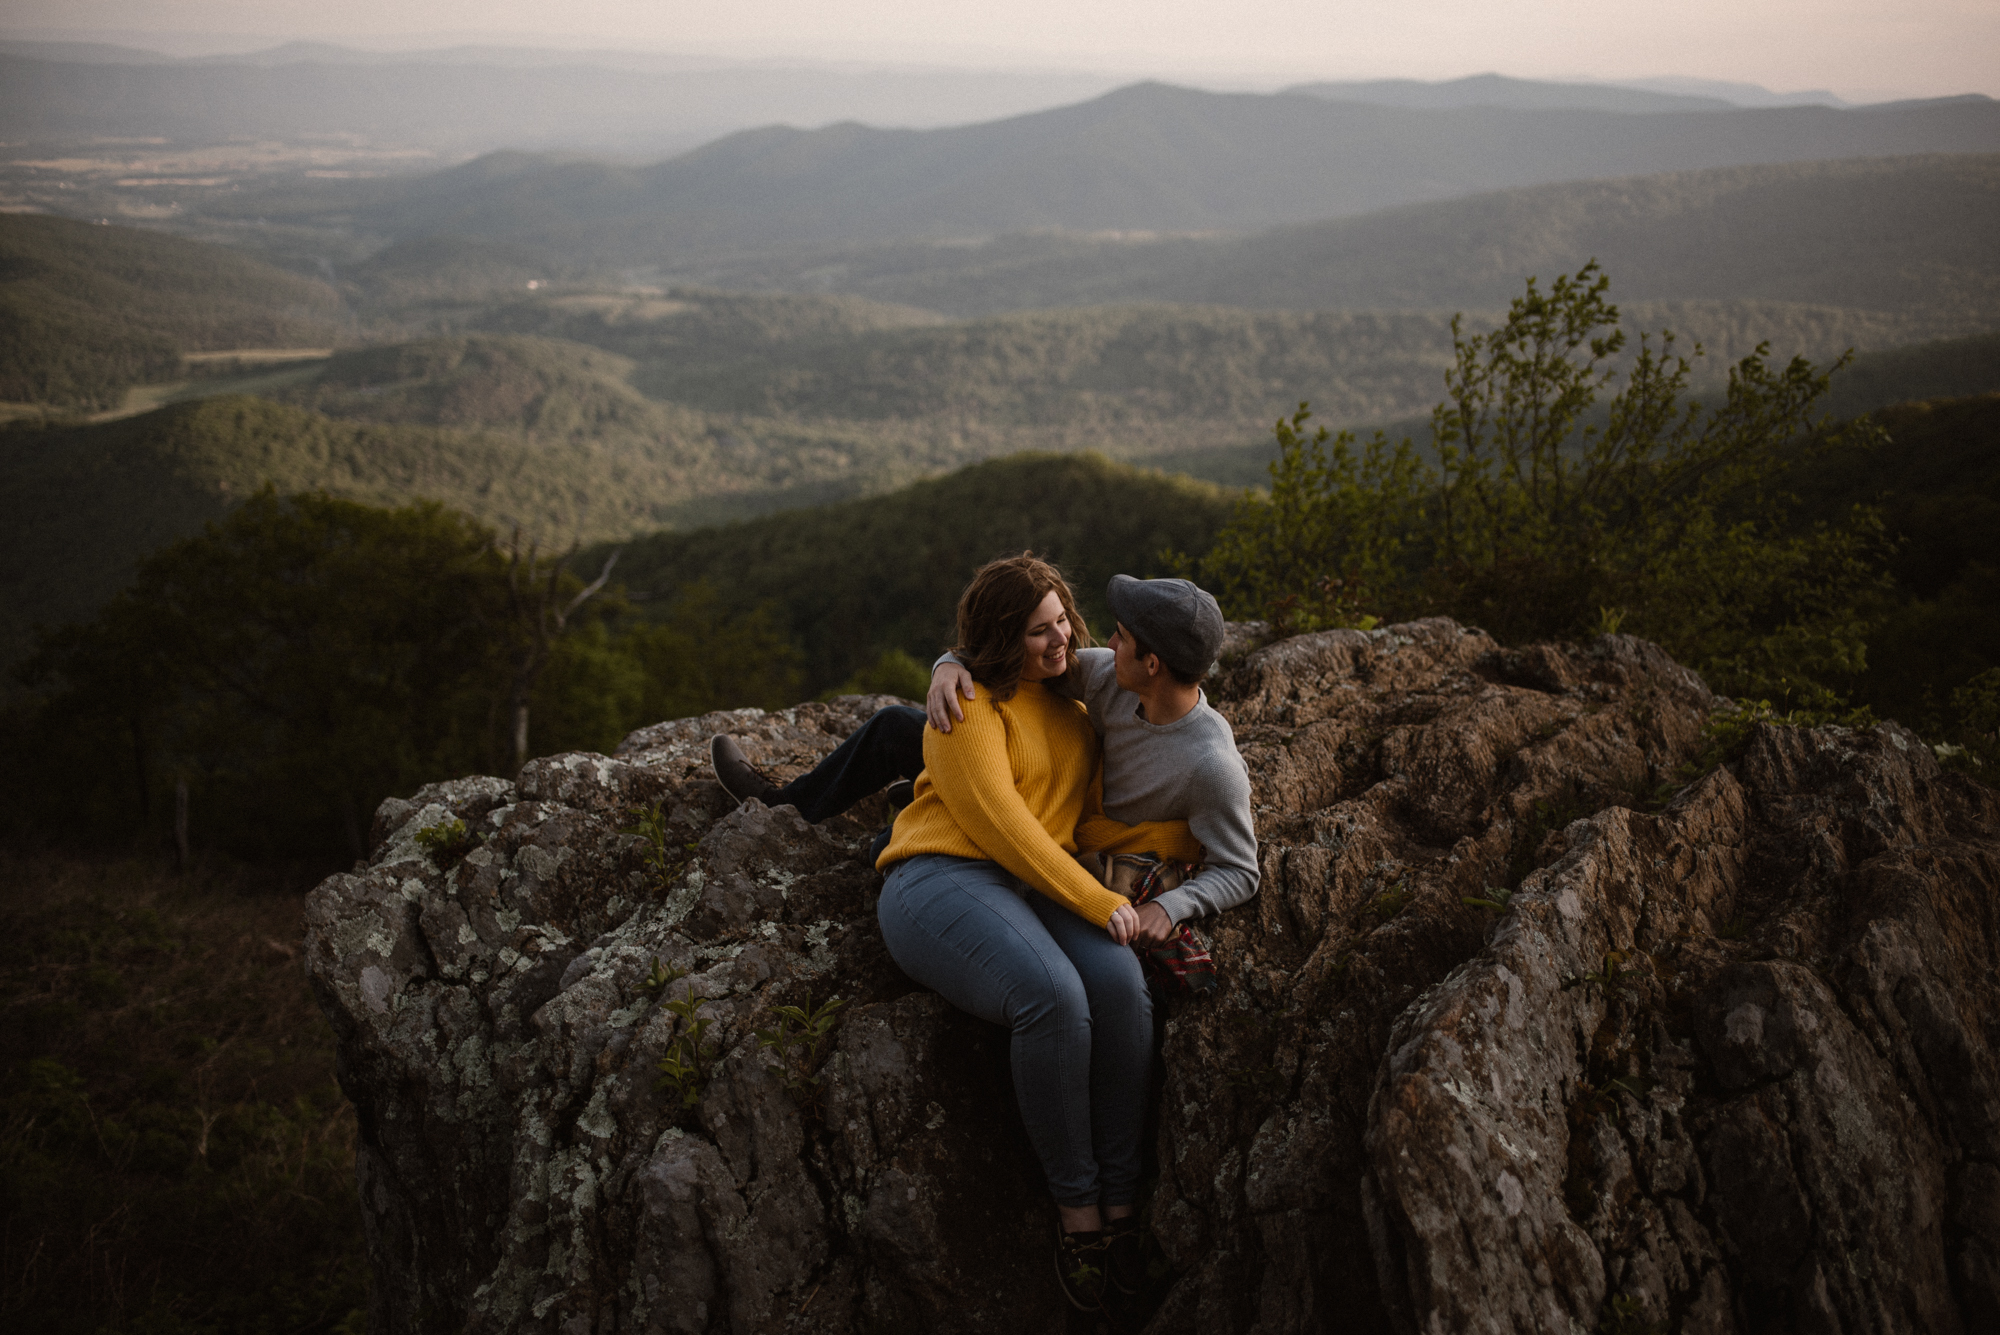 Sloane and Evan Sunrise Engagement Session in Shenandoah National Park - Things to Do in Luray Virginia - Adventurous Couple Photo Shoot White Sails Creative_28.jpg